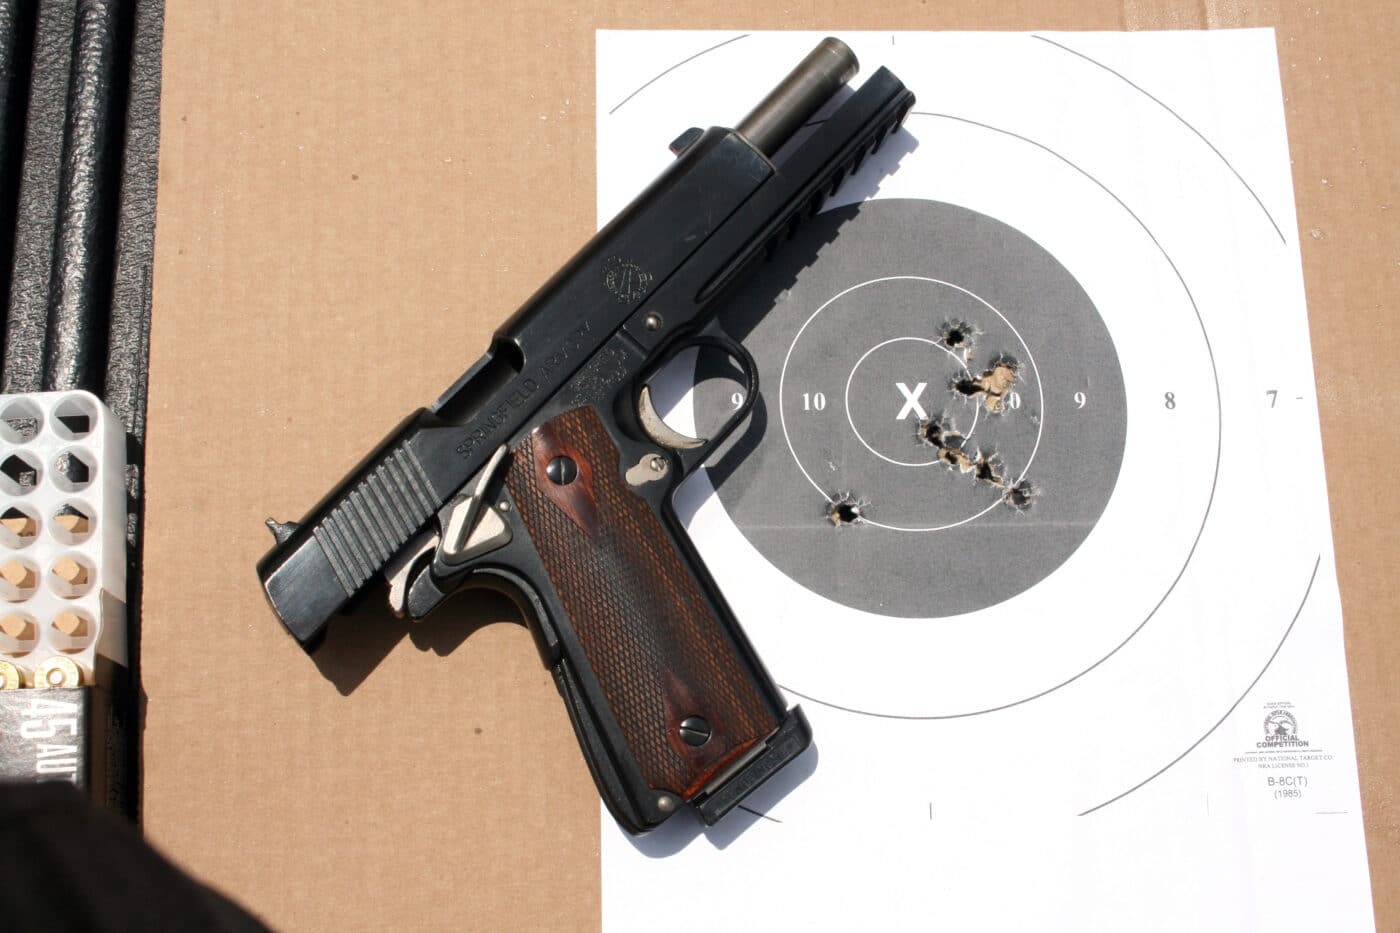 1911 pistol with target after training on the range